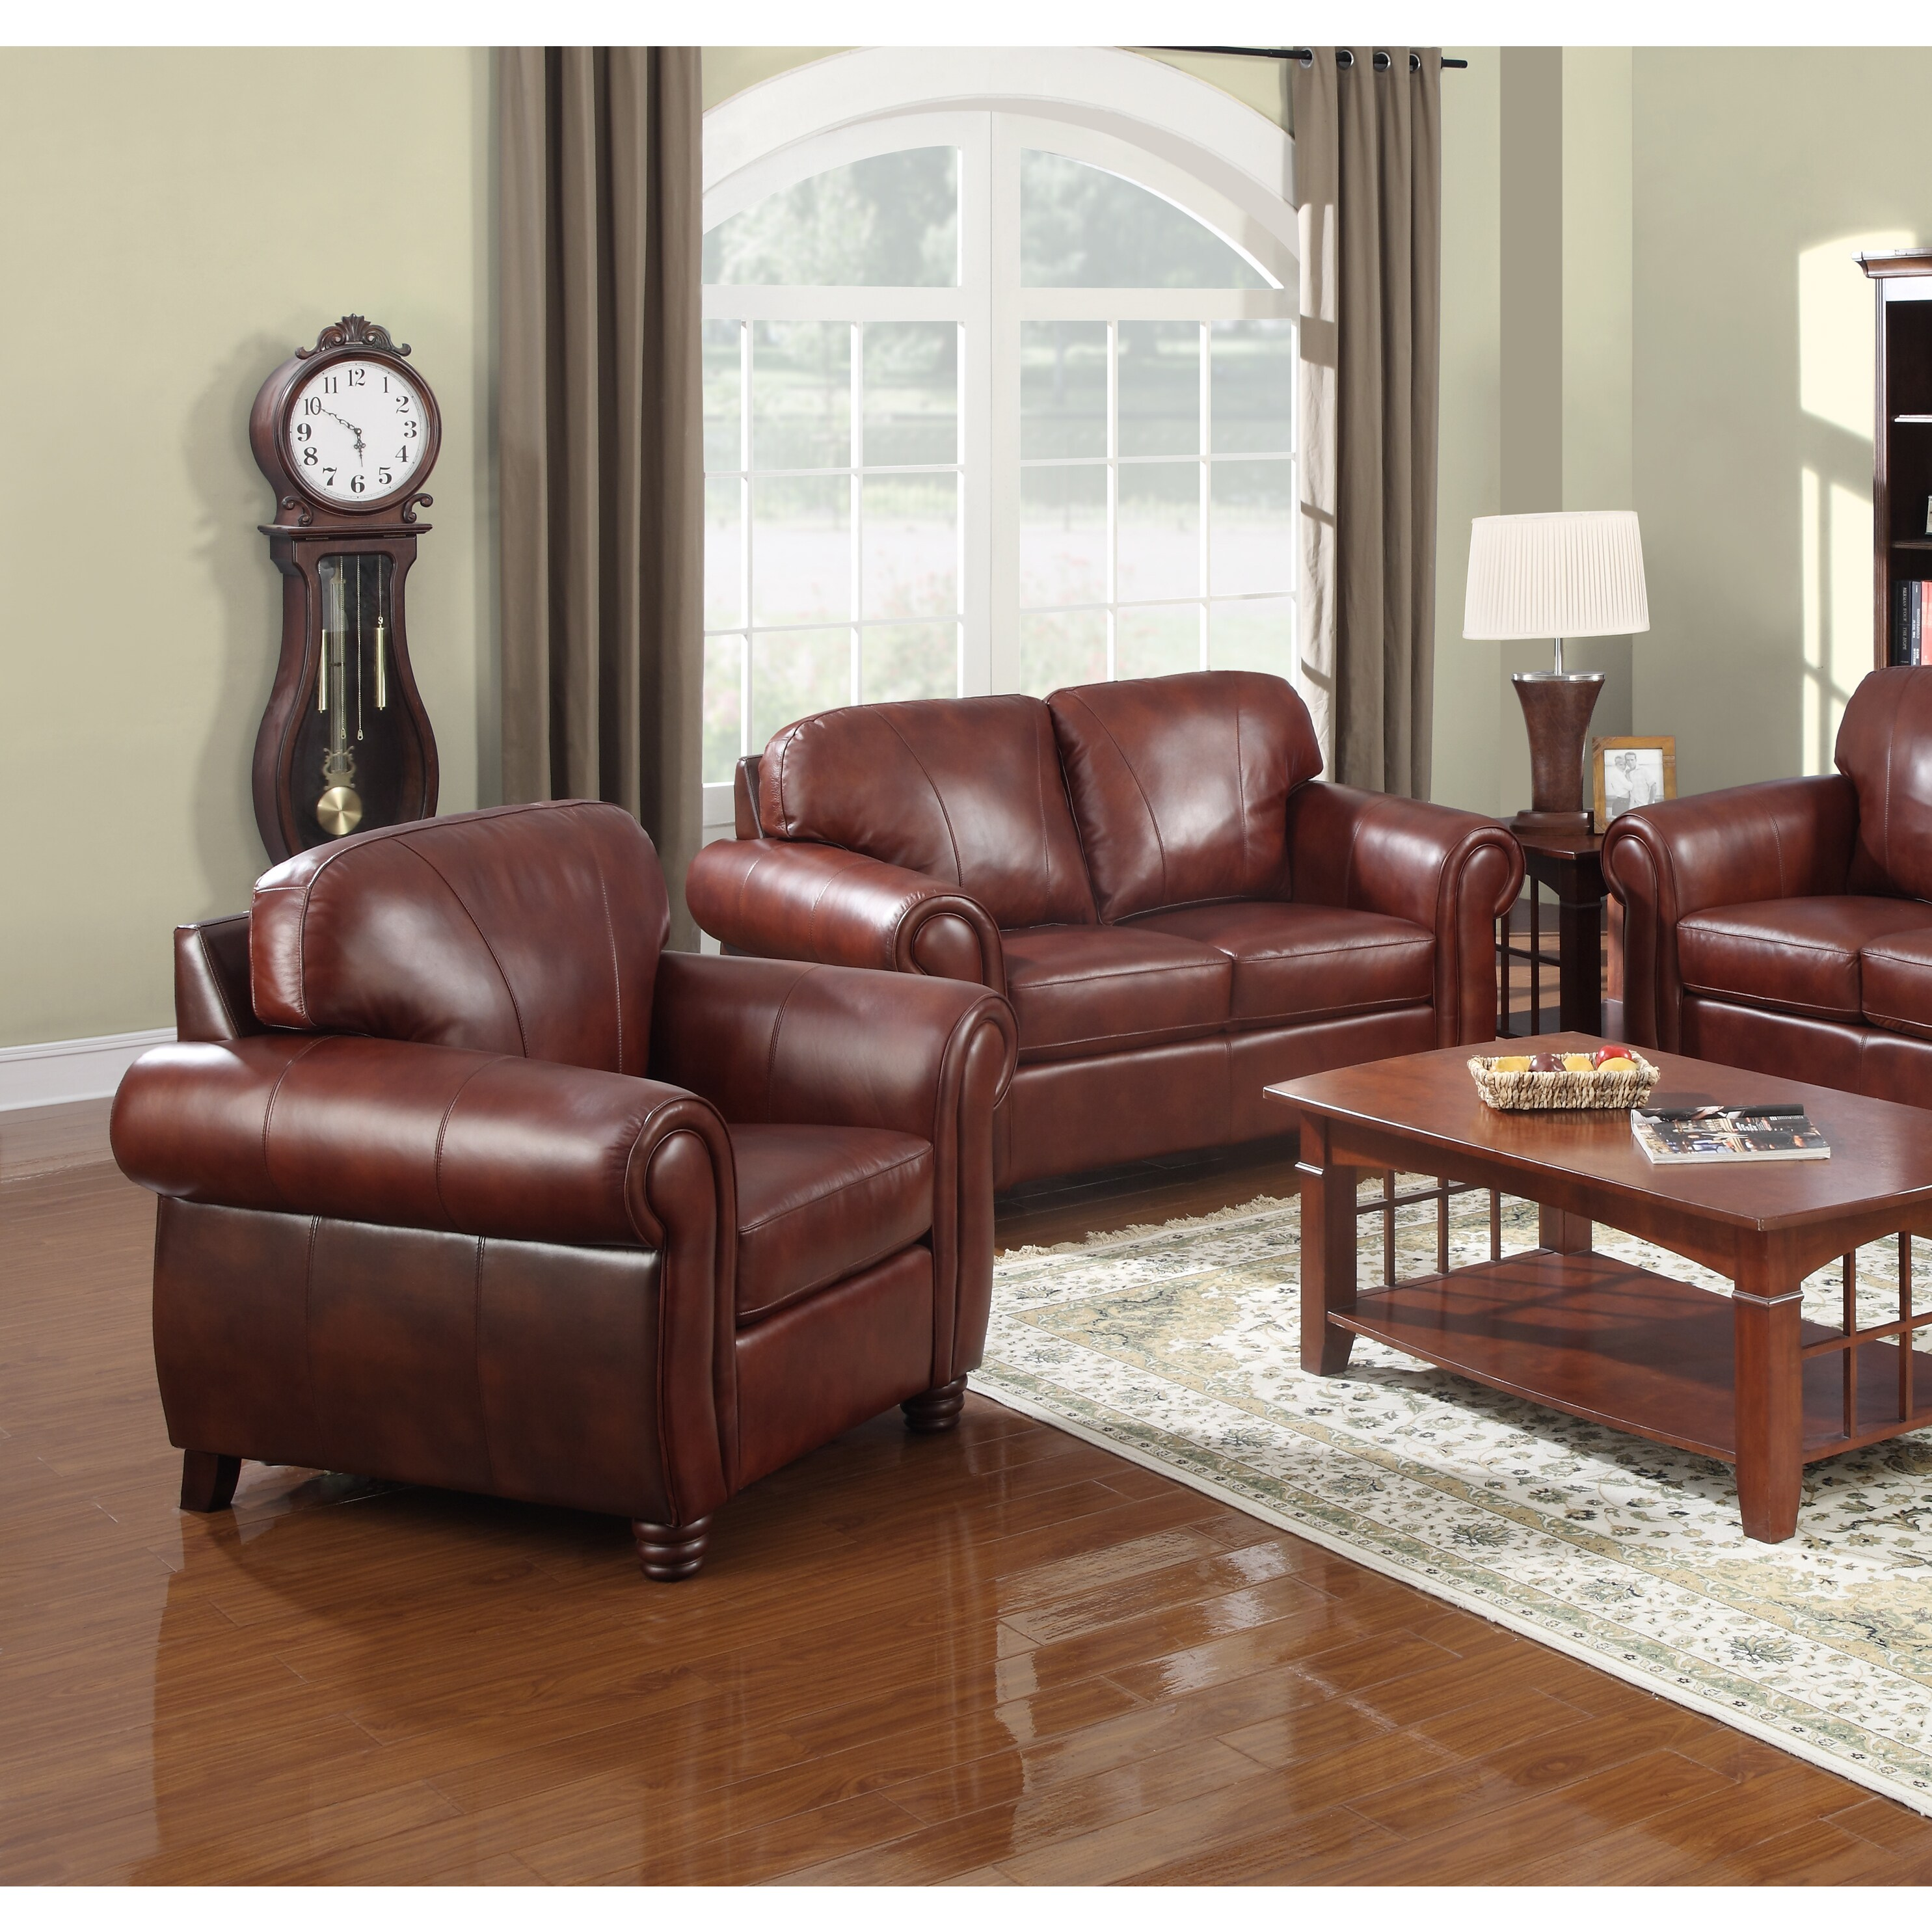 Overstock.com At Home Designs Mendocino Burnt Sienna Leather Chair at Sears.com